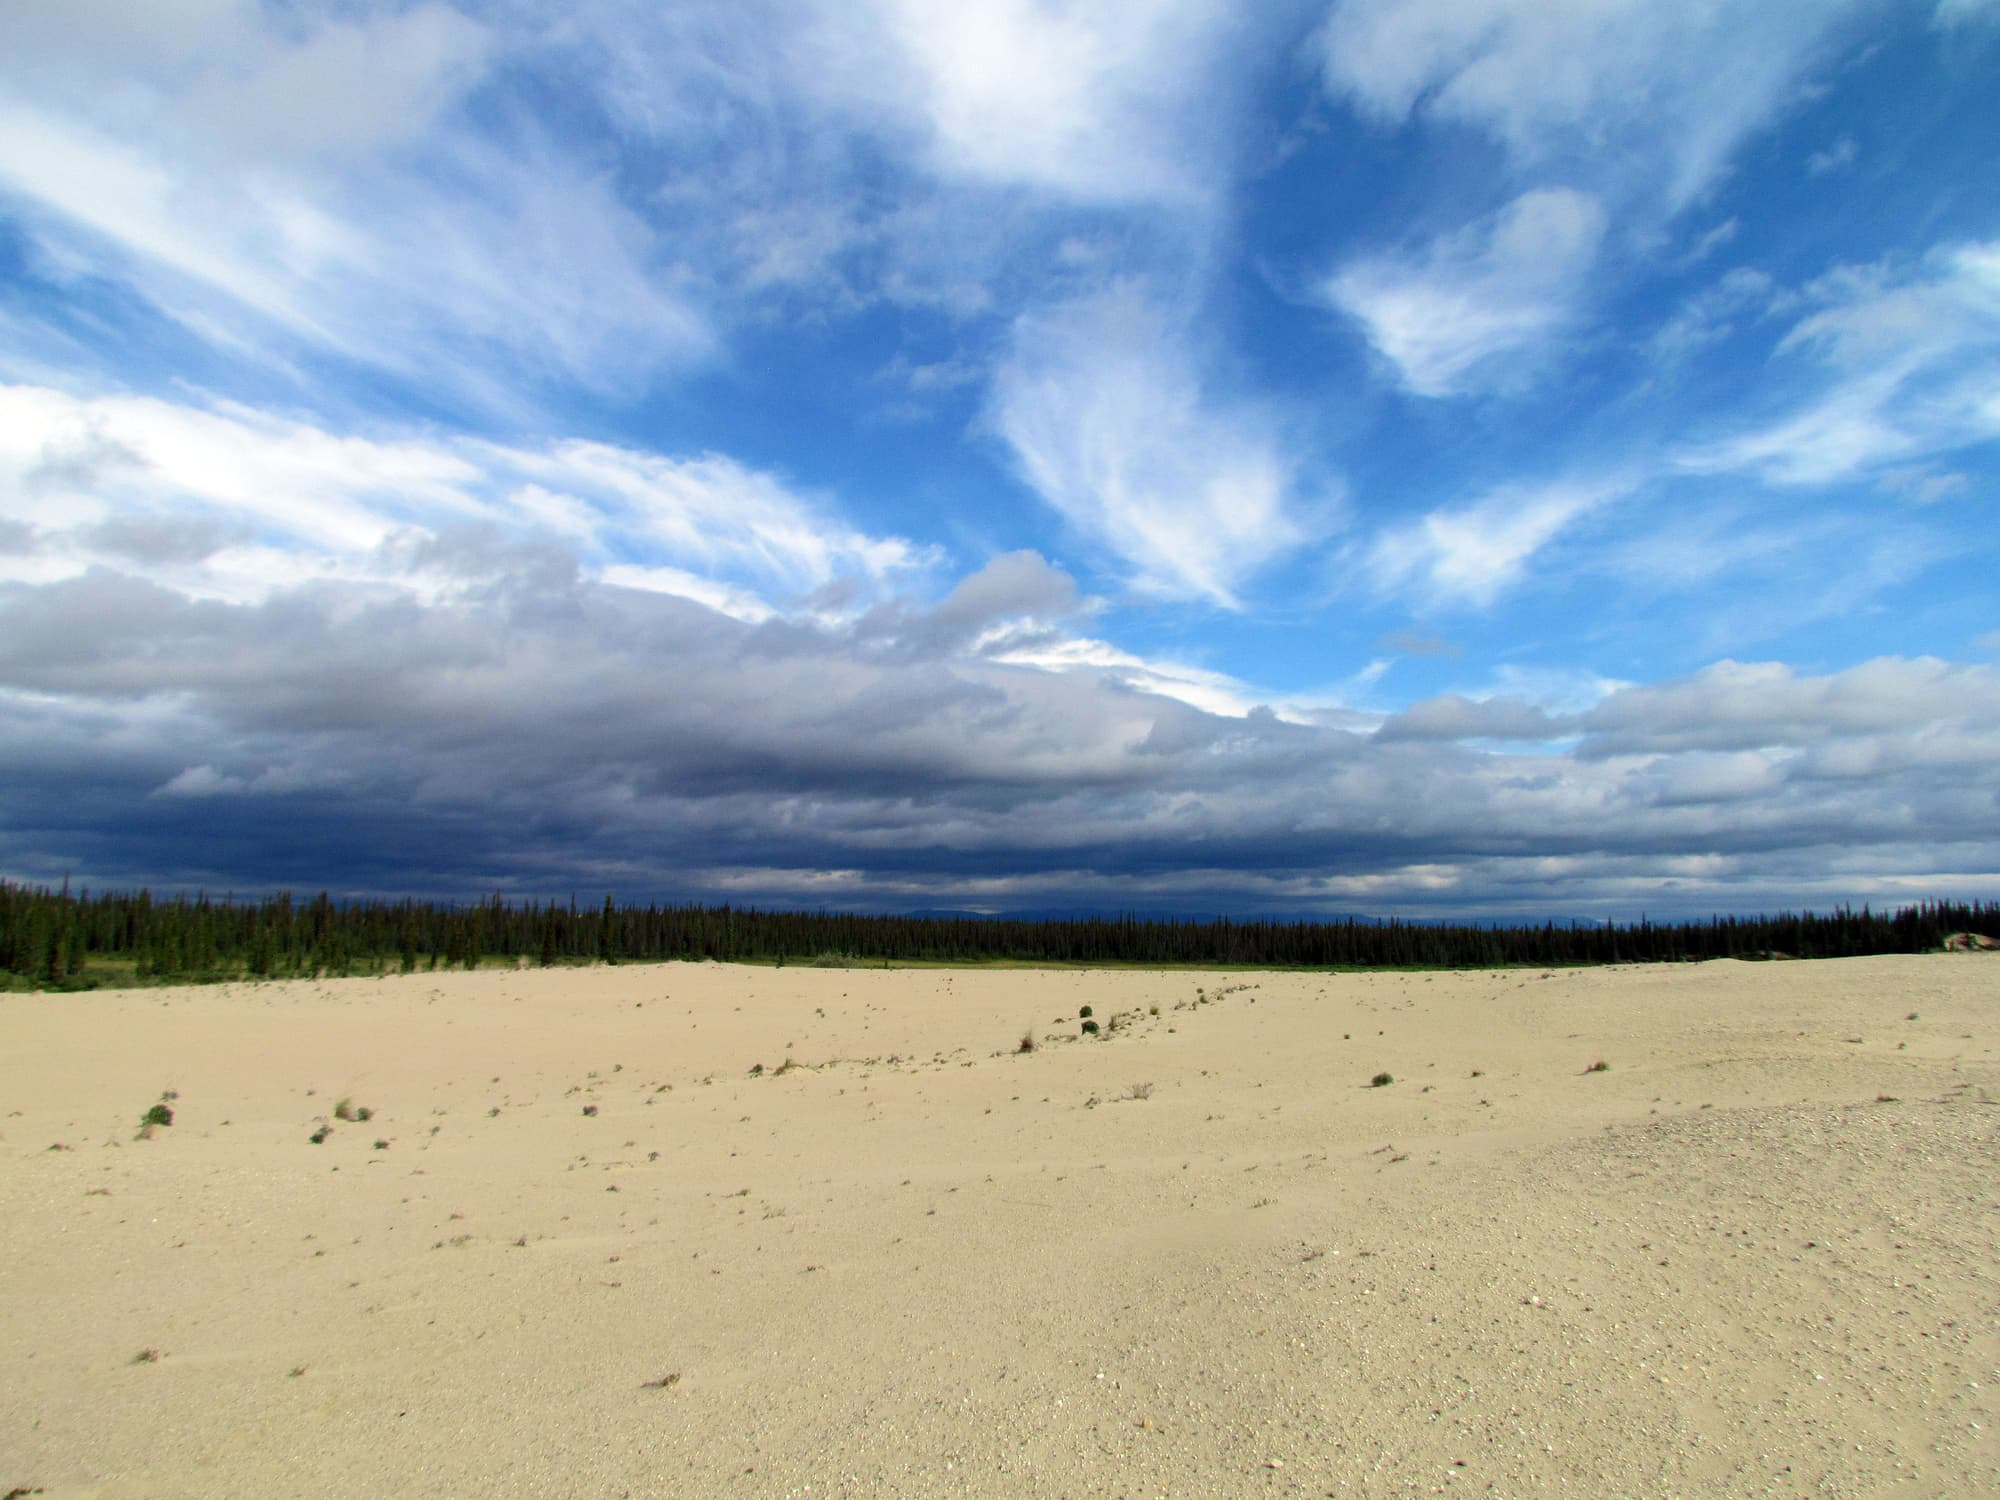 clouds over sand dunes